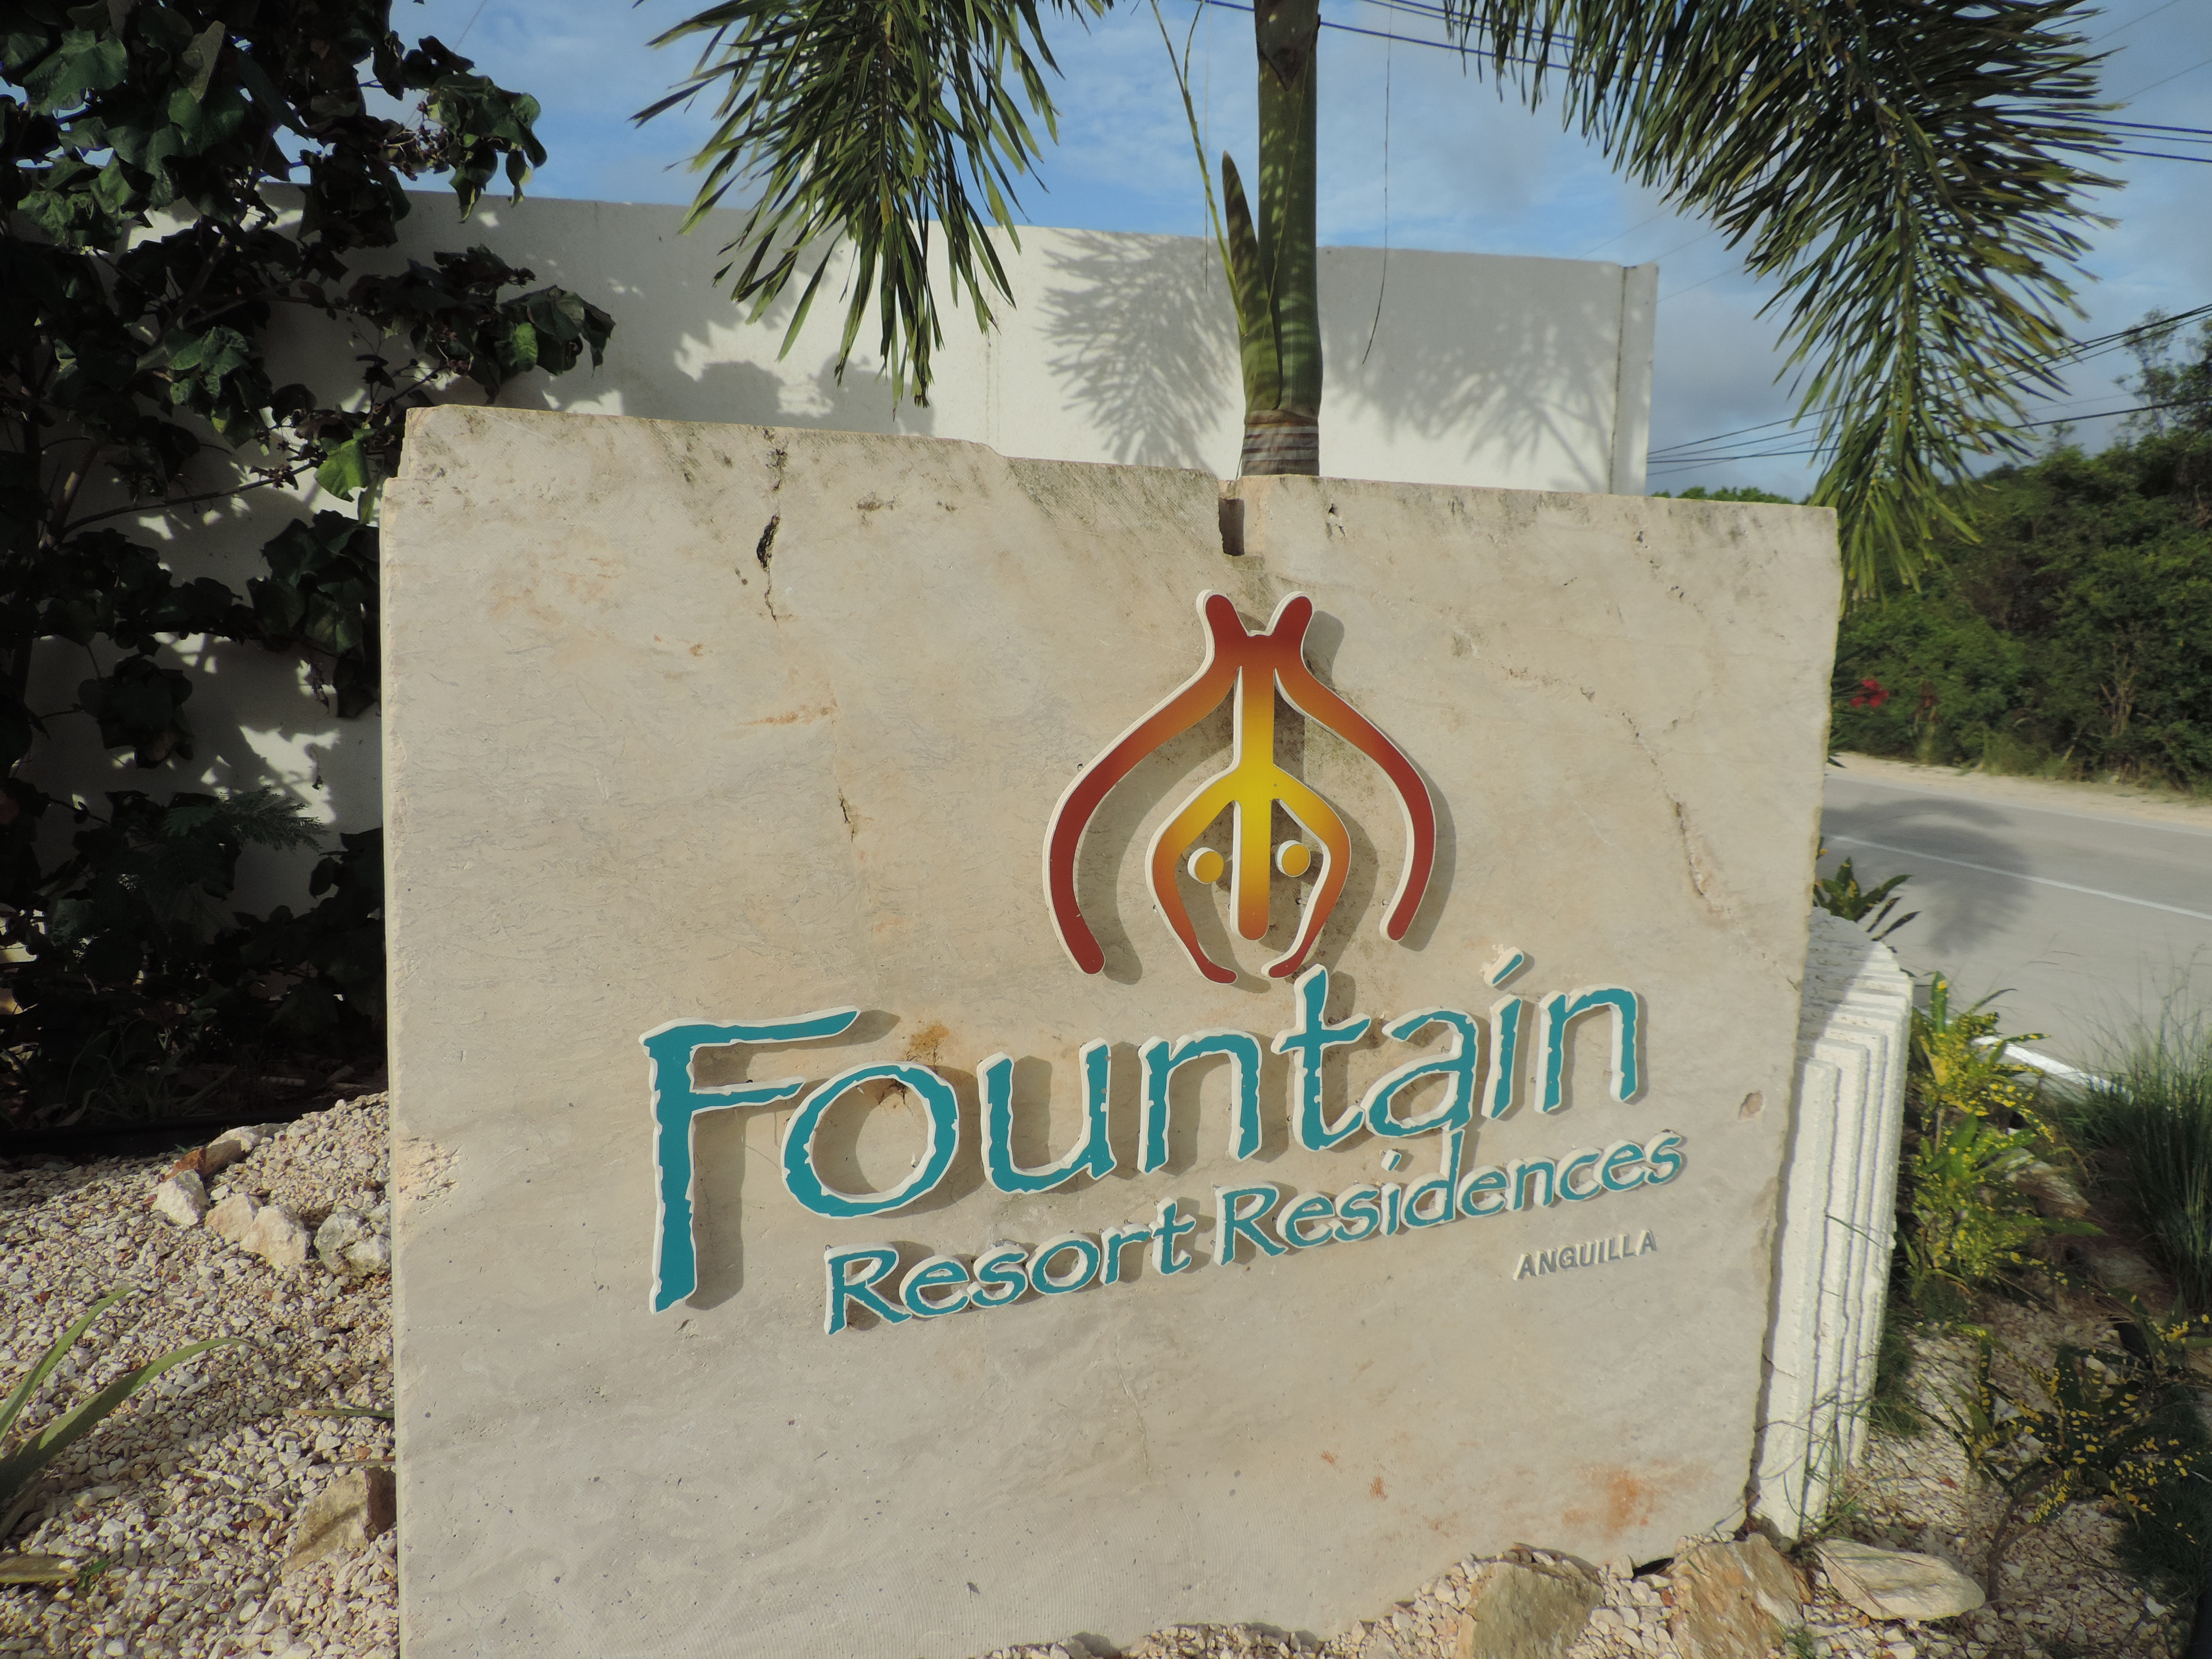 Welcome to Fountain Resort Residences